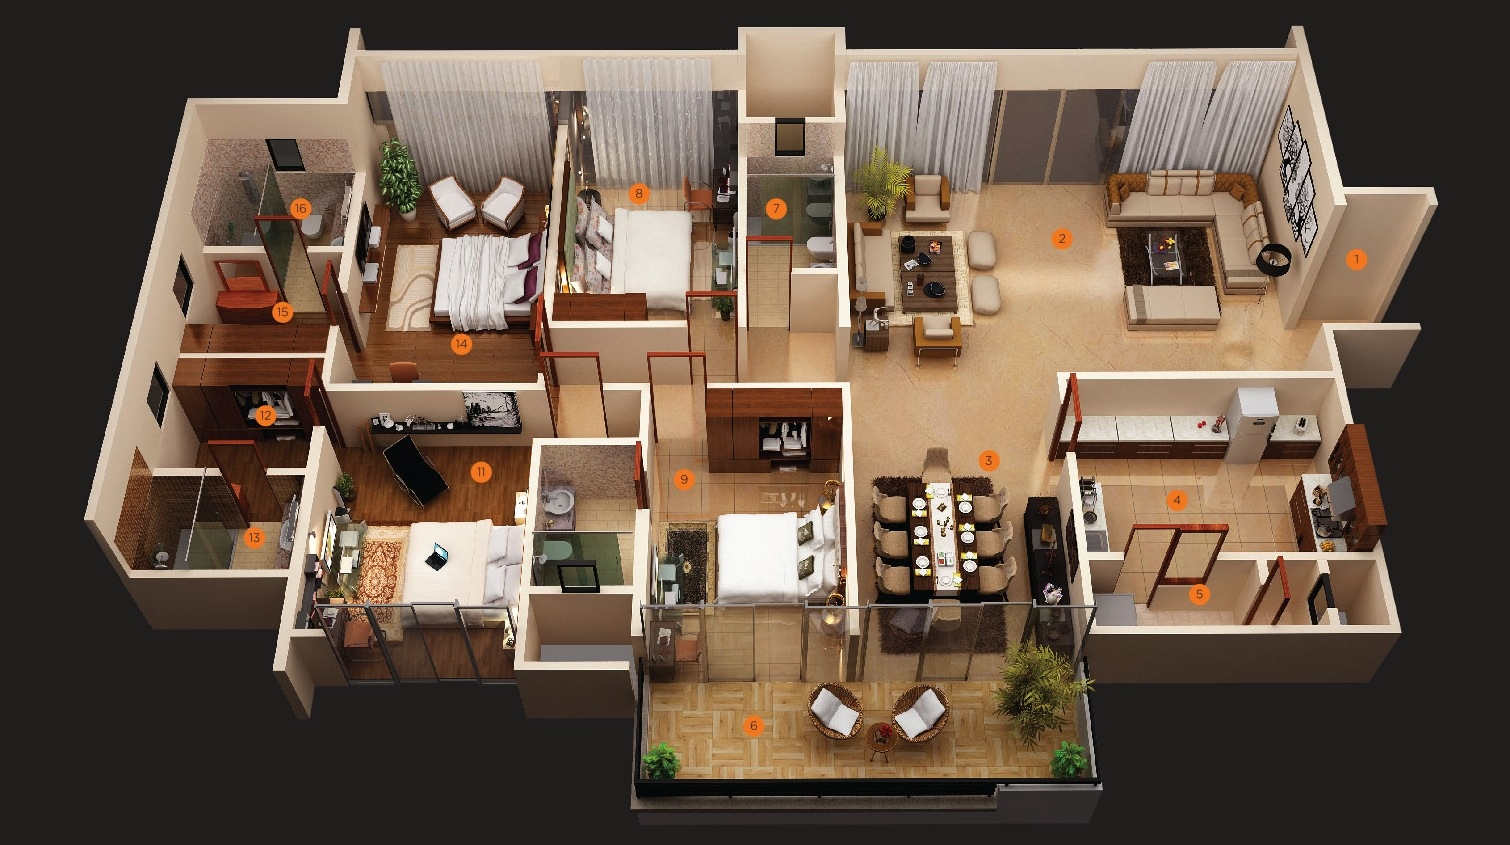 Modern 4 bedroom house plans decor units for House layouts 4 bedroom